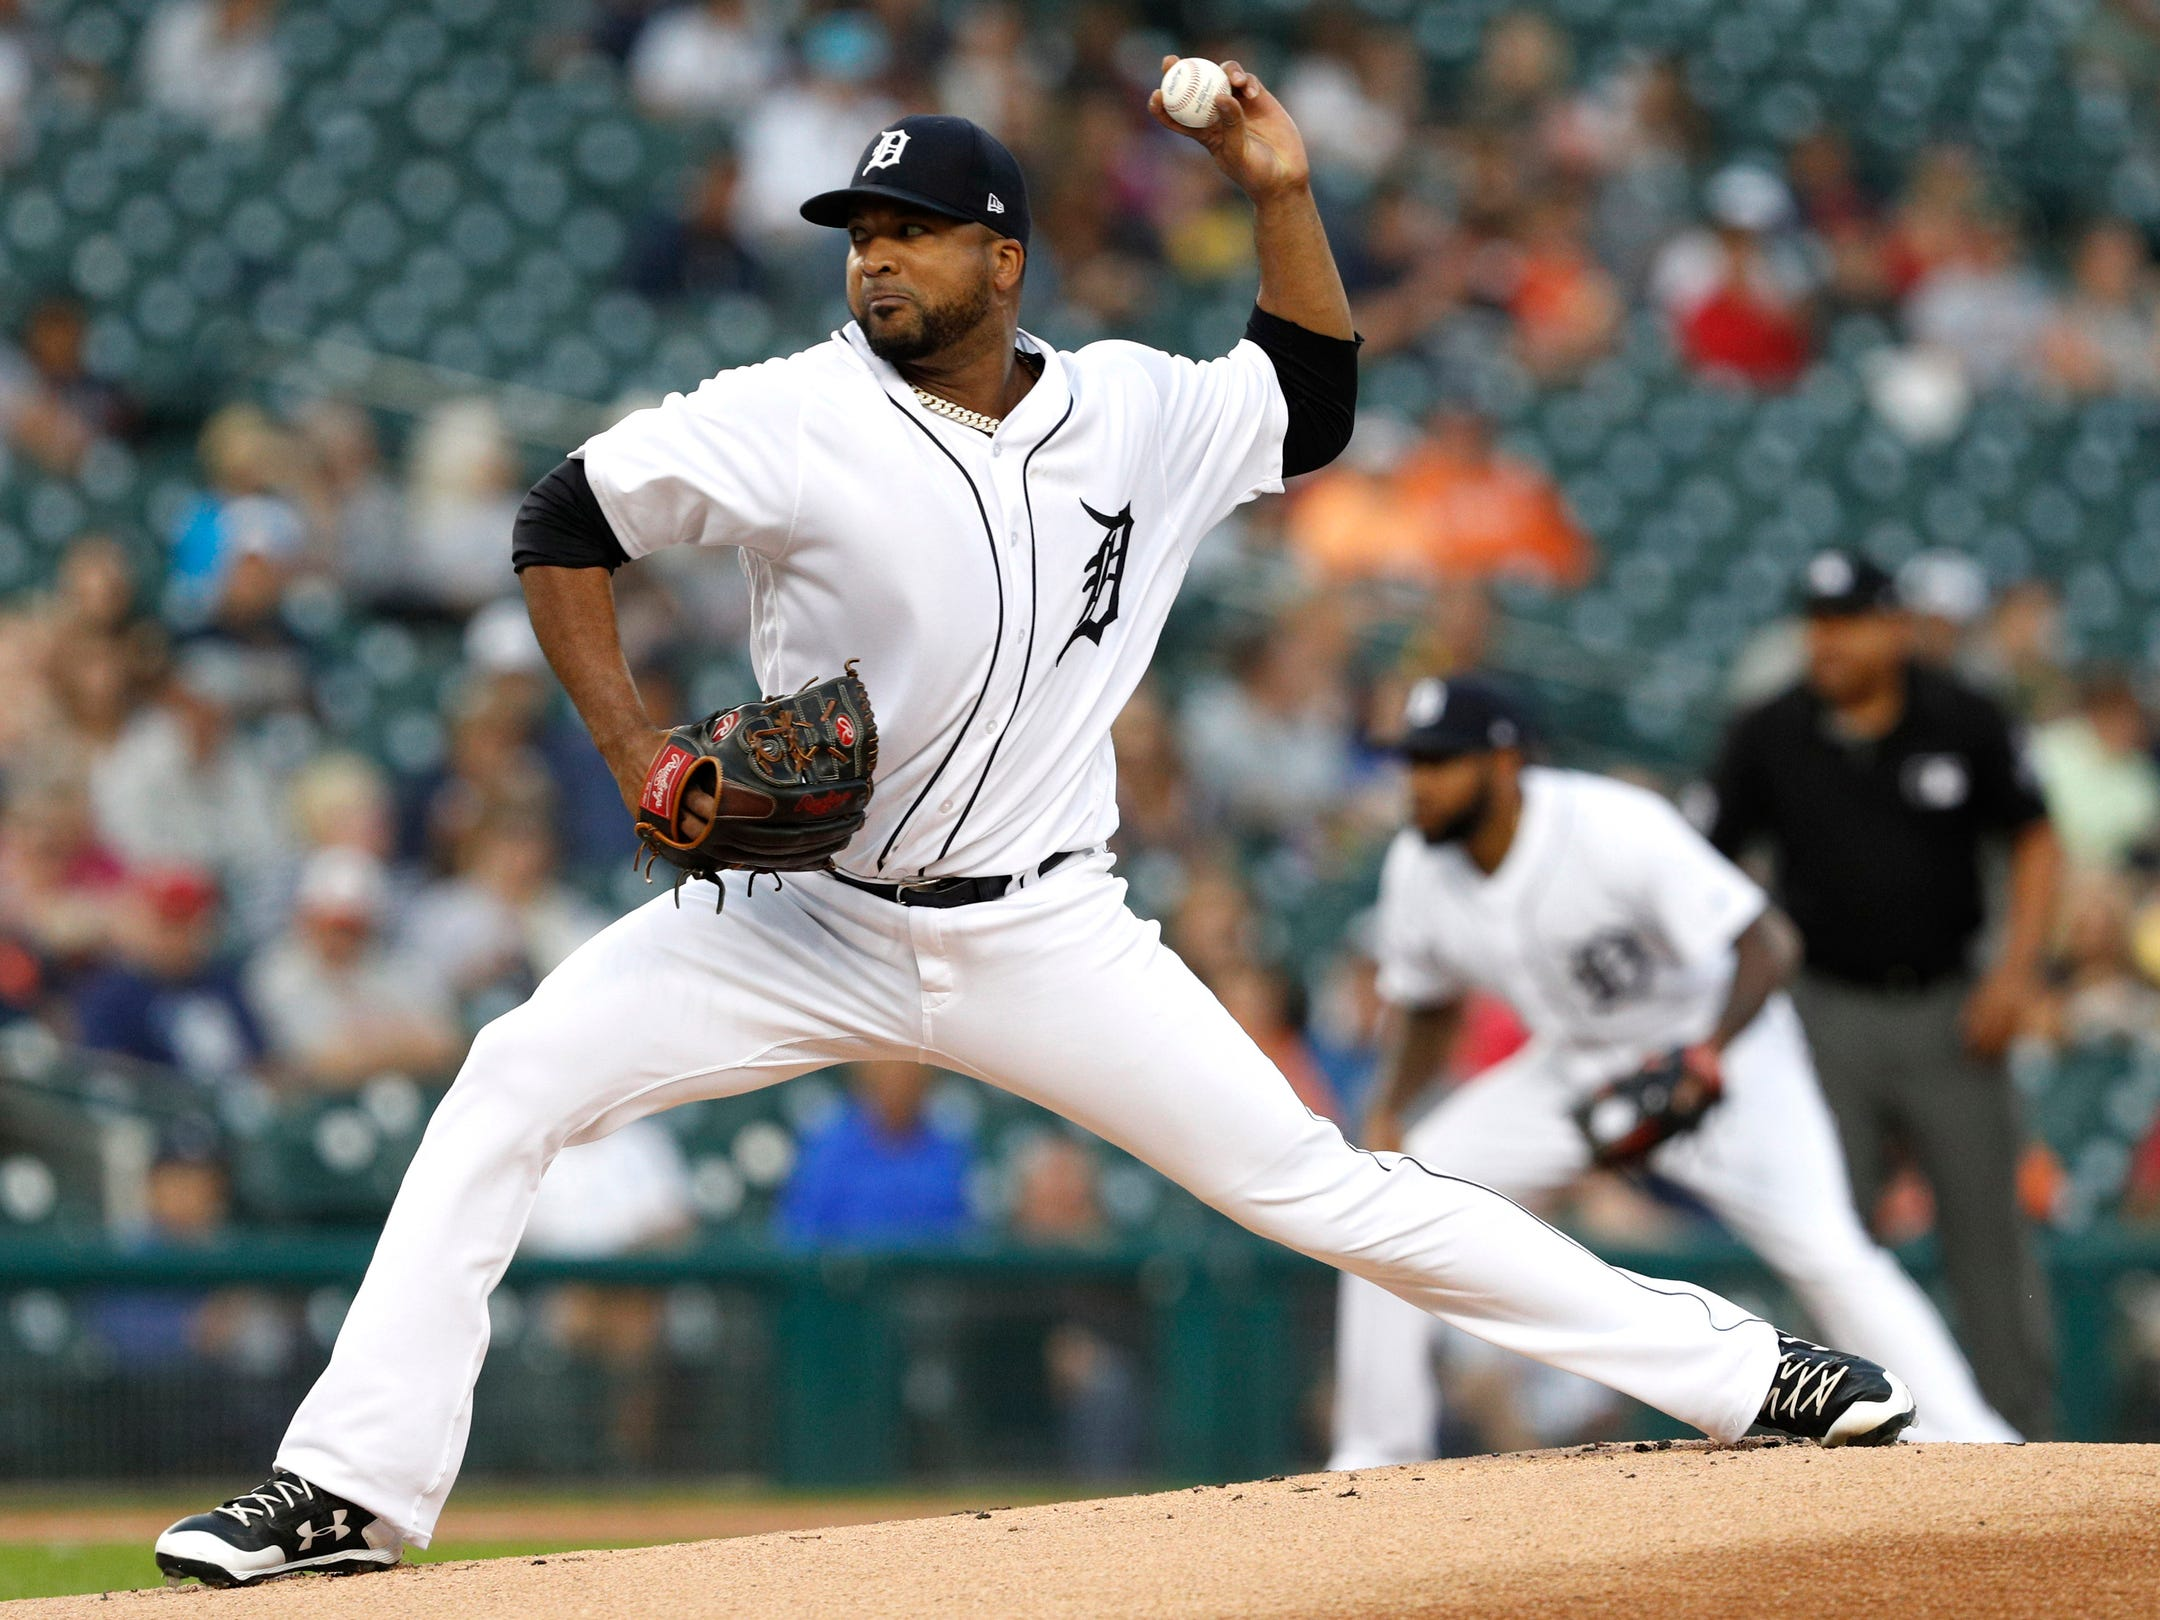 Detroit Tigers starting pitcher Francisco Liriano pitches during the first inning against the Kansas City Royals at Comerica Park on Sept. 21, 2018.